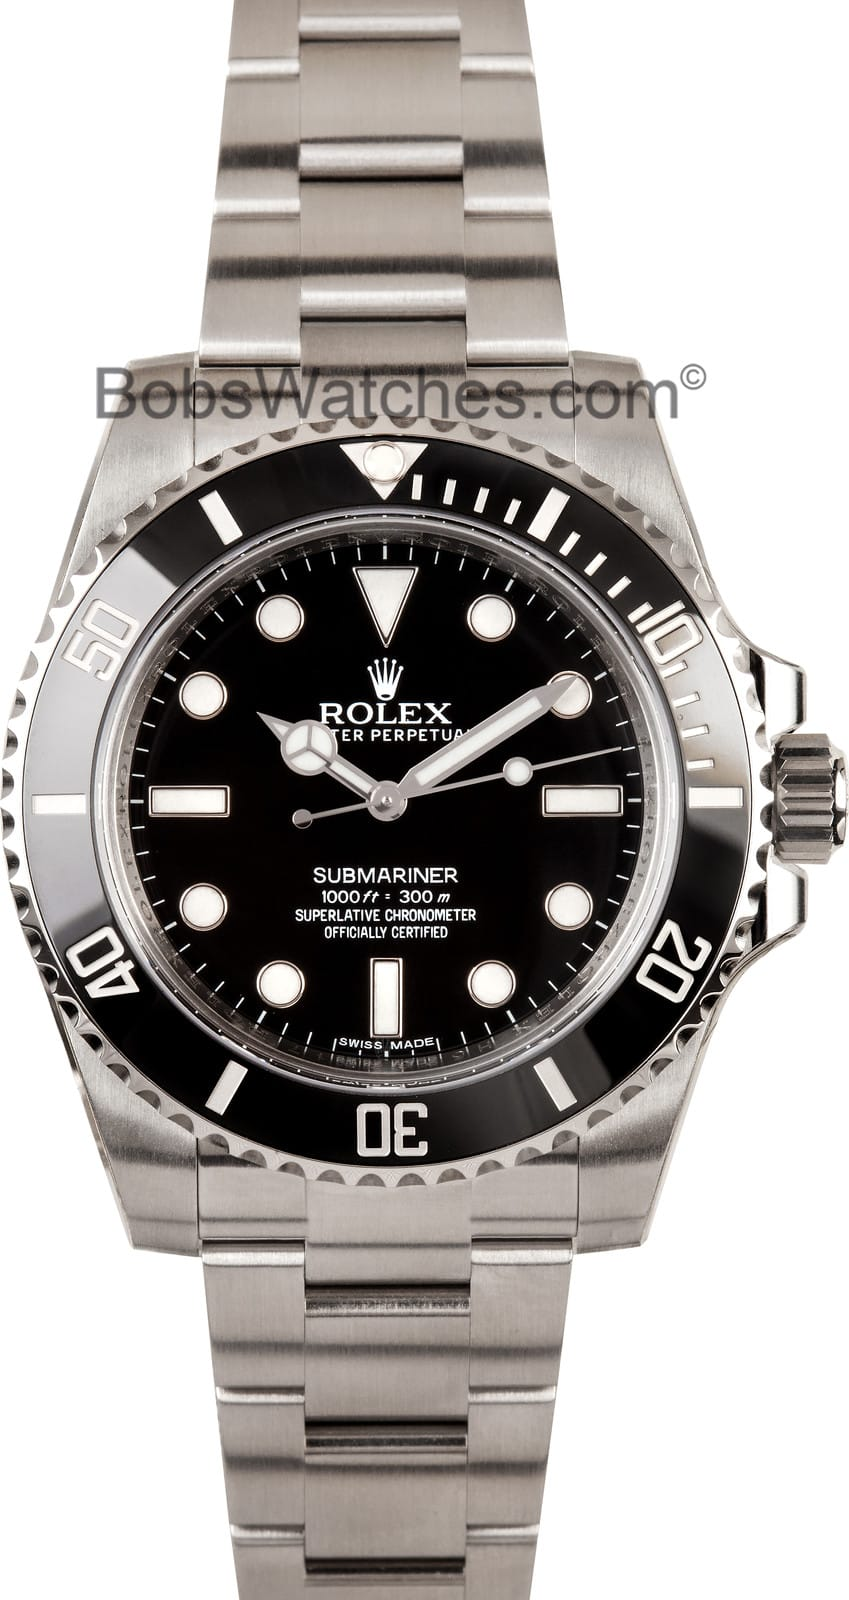 ceramic rolex submariner 114060 100 authentic watch at bobs. Black Bedroom Furniture Sets. Home Design Ideas